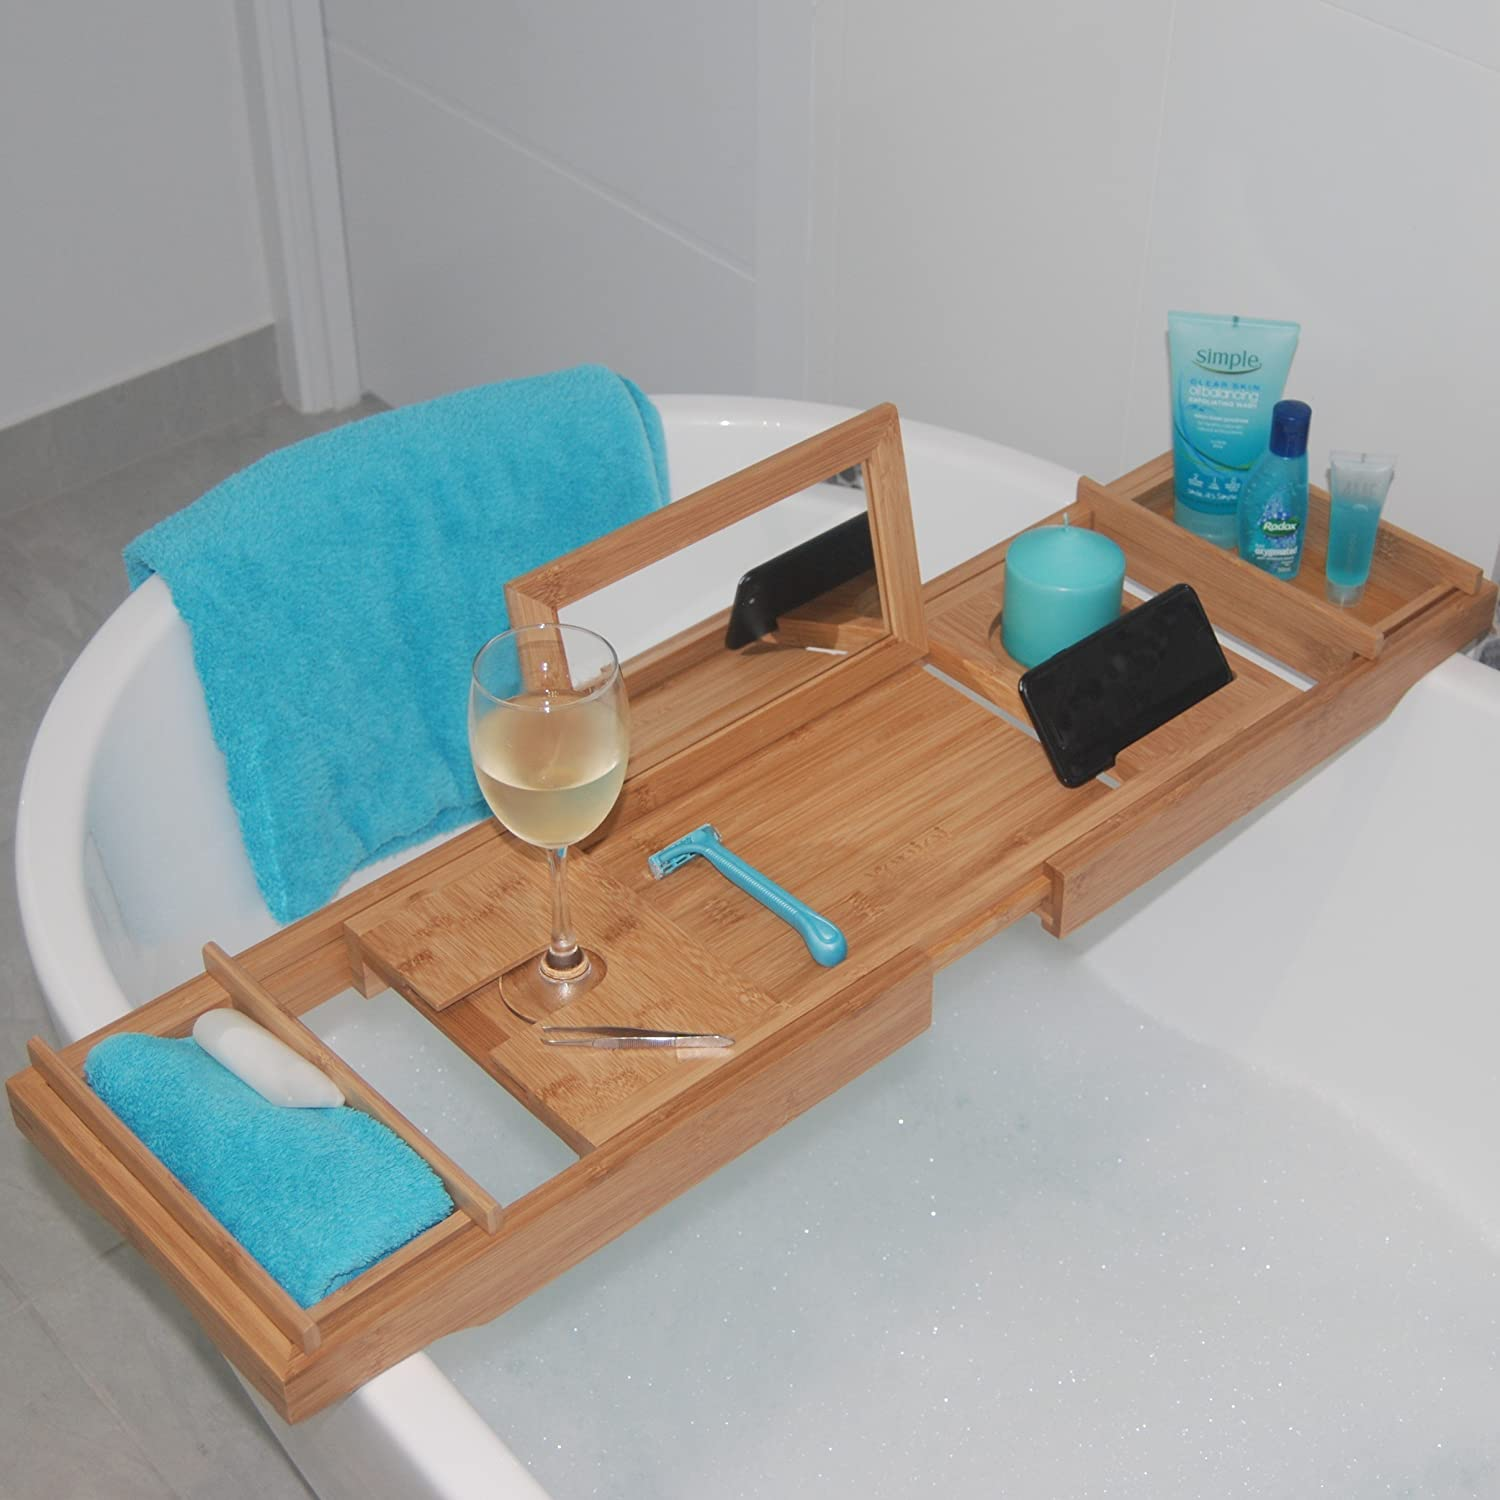 ADD A TOUCH OF STYLE TO YOUR BATHROOM - Our Luxury Bamboo Bathtub Tray / Bathtub Caddy with MIRROR also comes with Extending Non Slip Sides  Wine Glass Holder  2 Removable Storage Shelves & More !! xenjoi X-1996